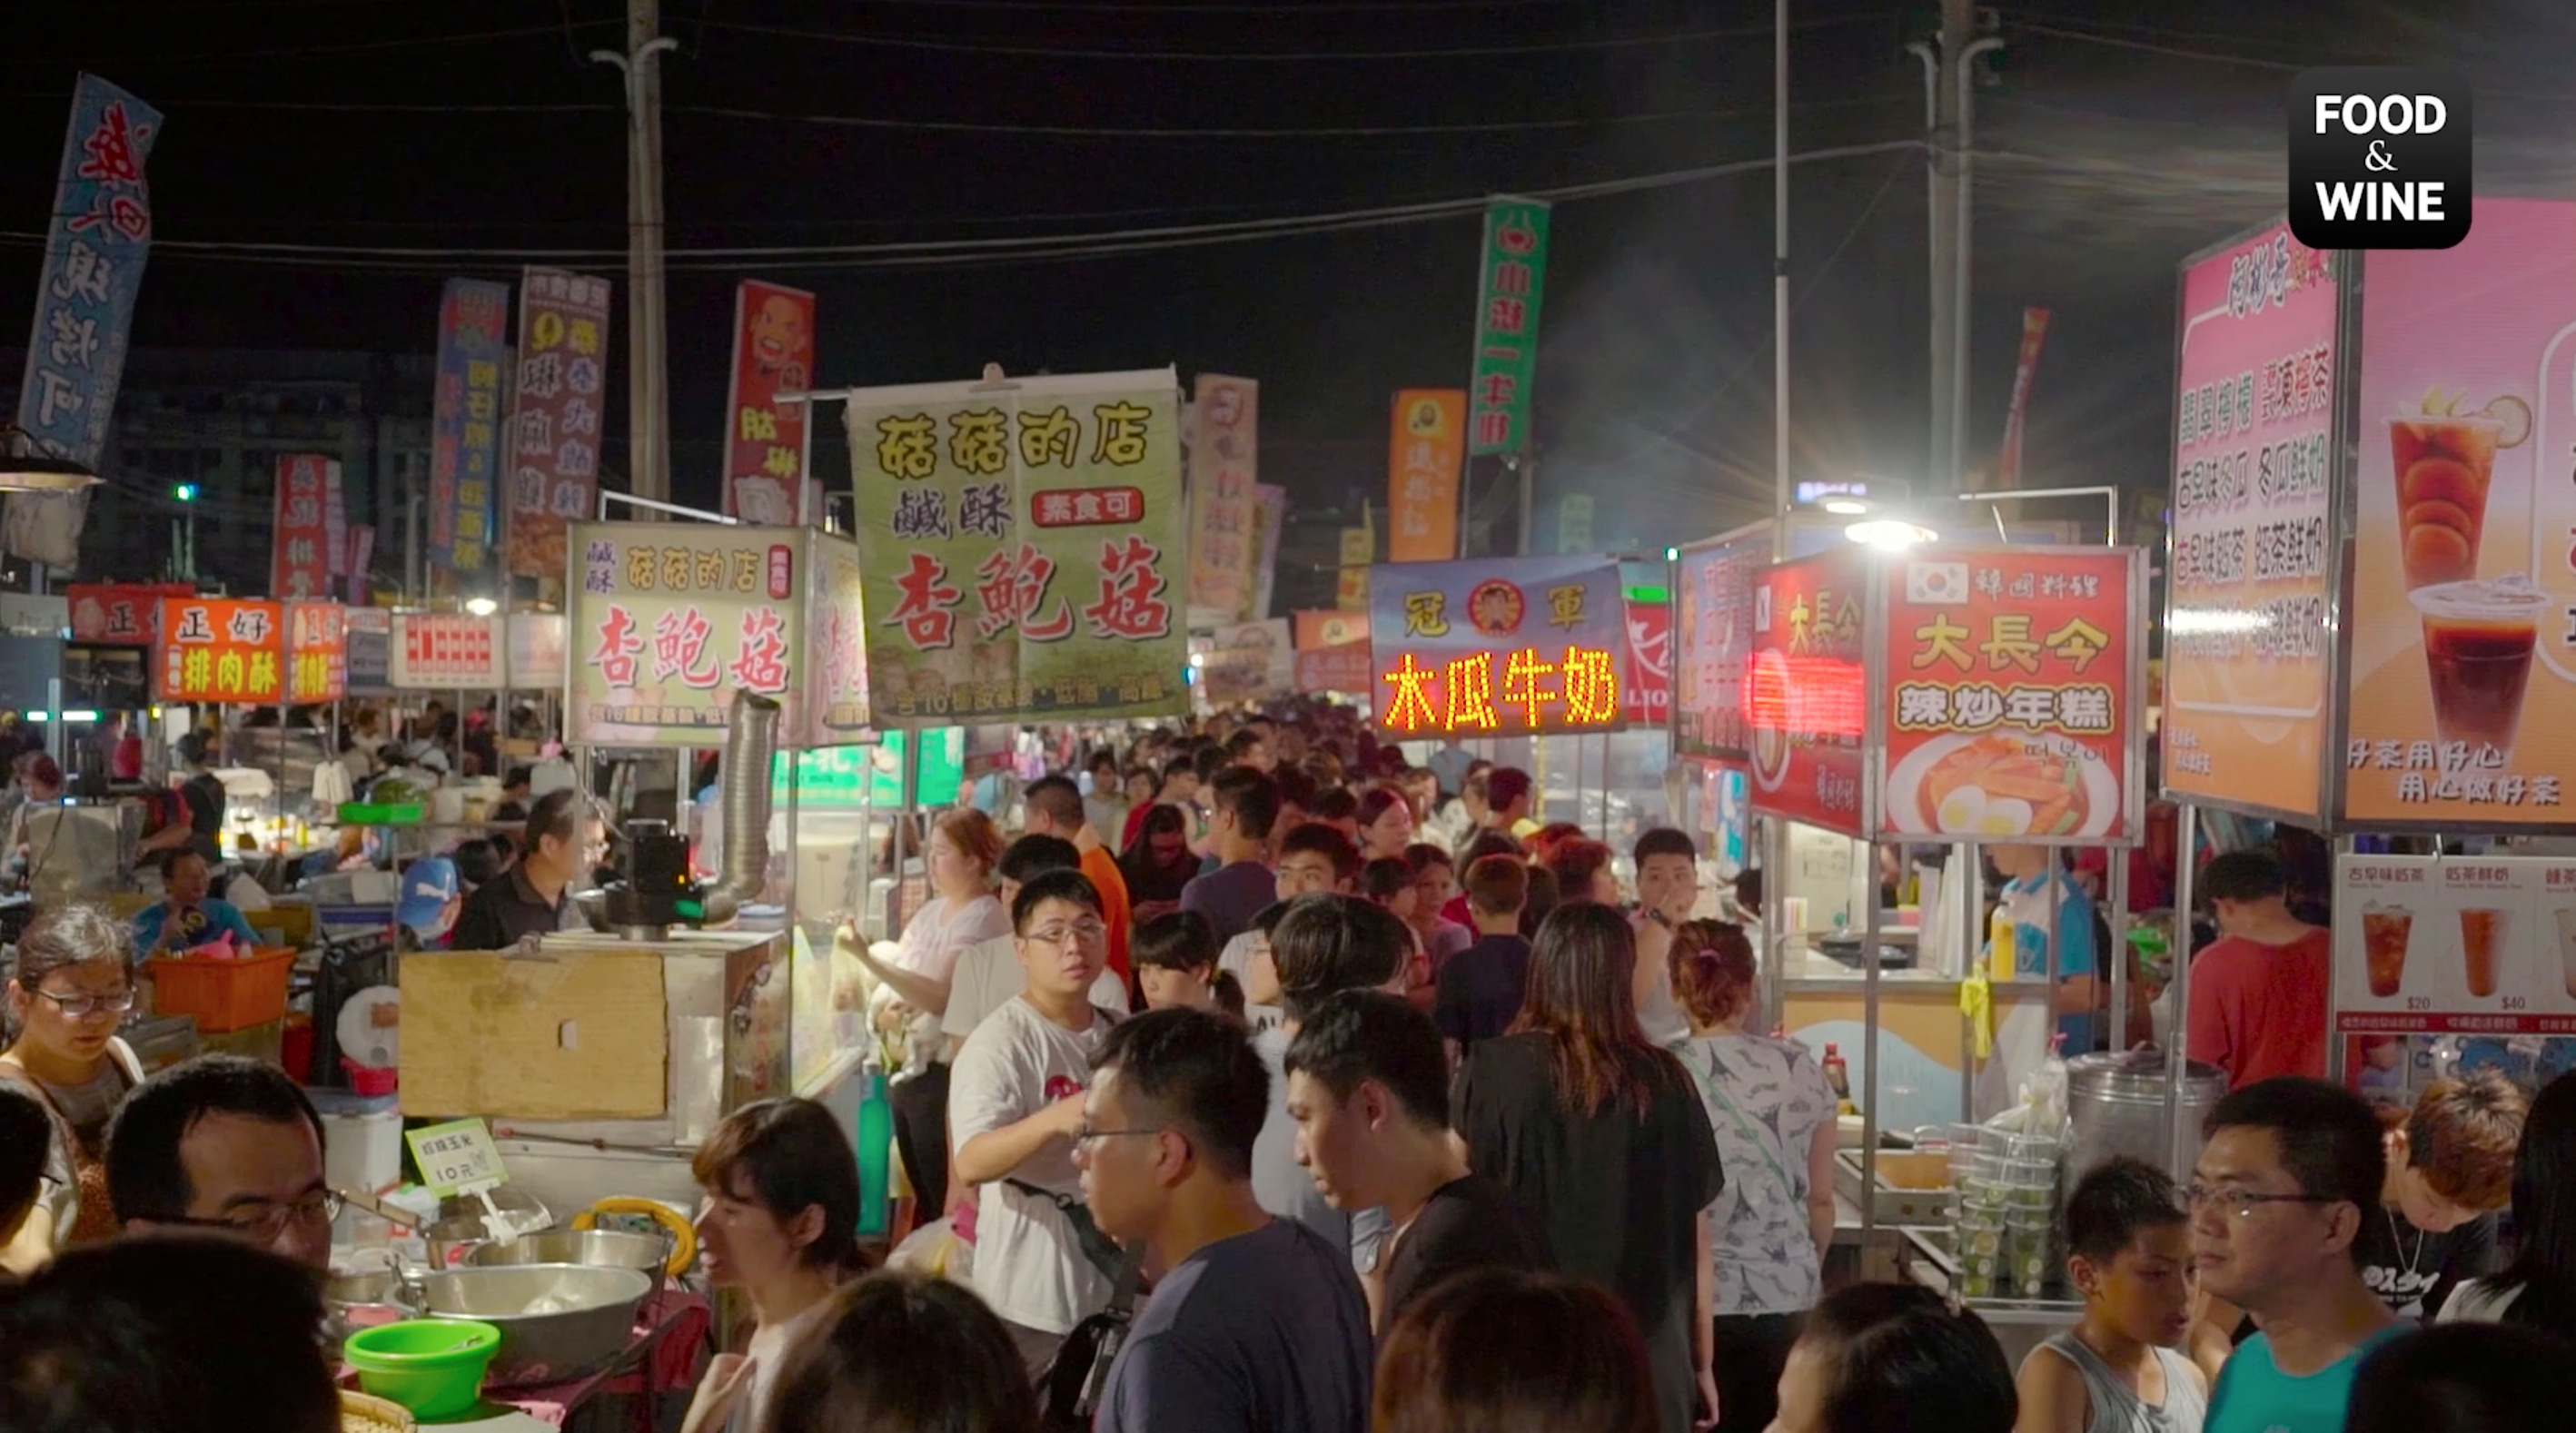 5 Snacks to Try in Taiwan's Night Markets